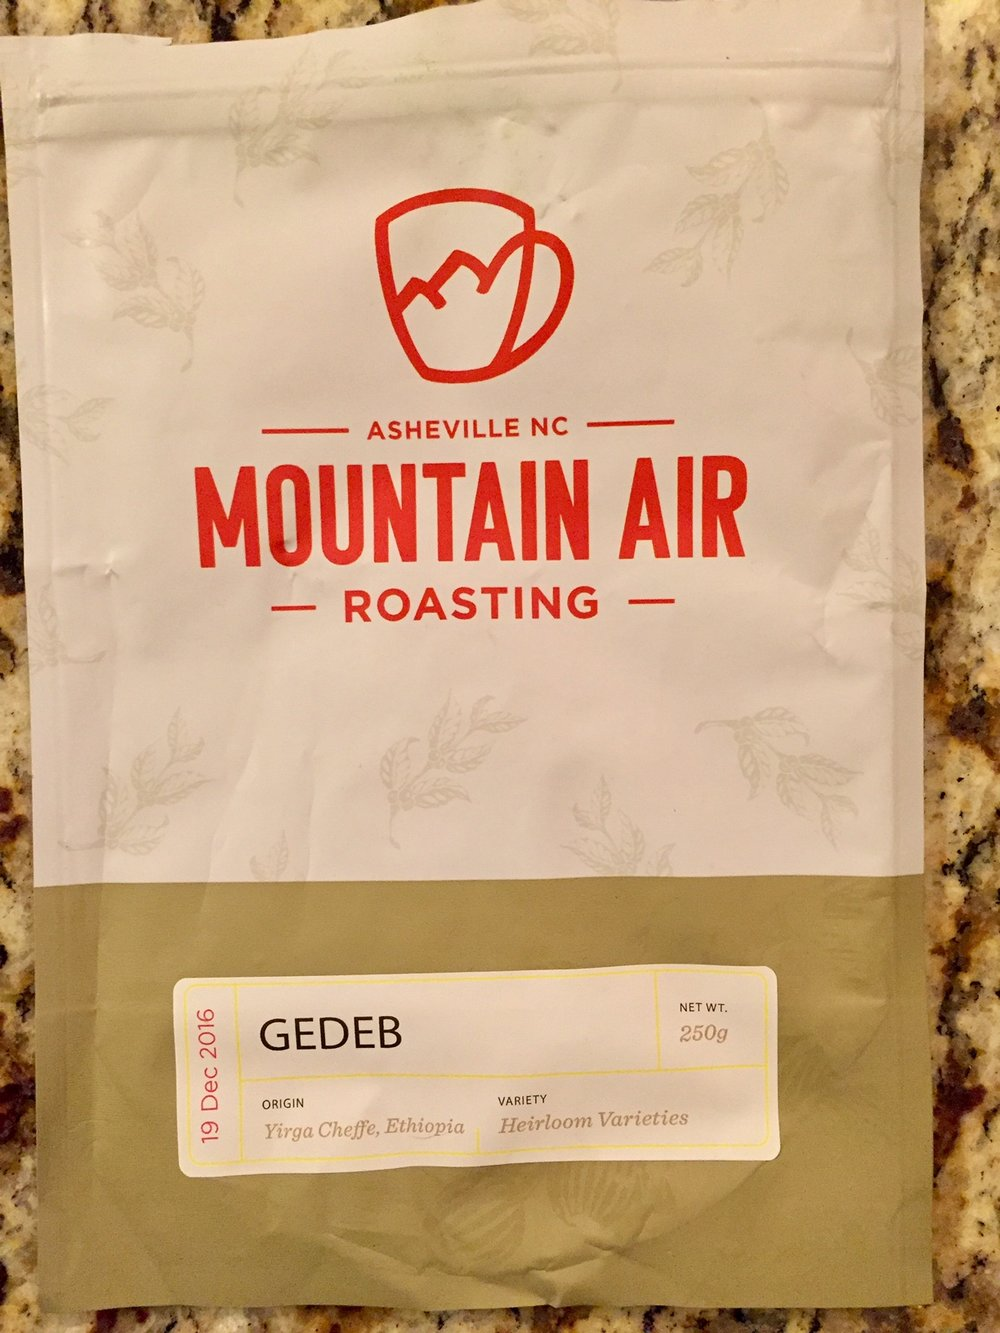 I love Mountain Air's bags and use them to freeze coffees as I receive them.